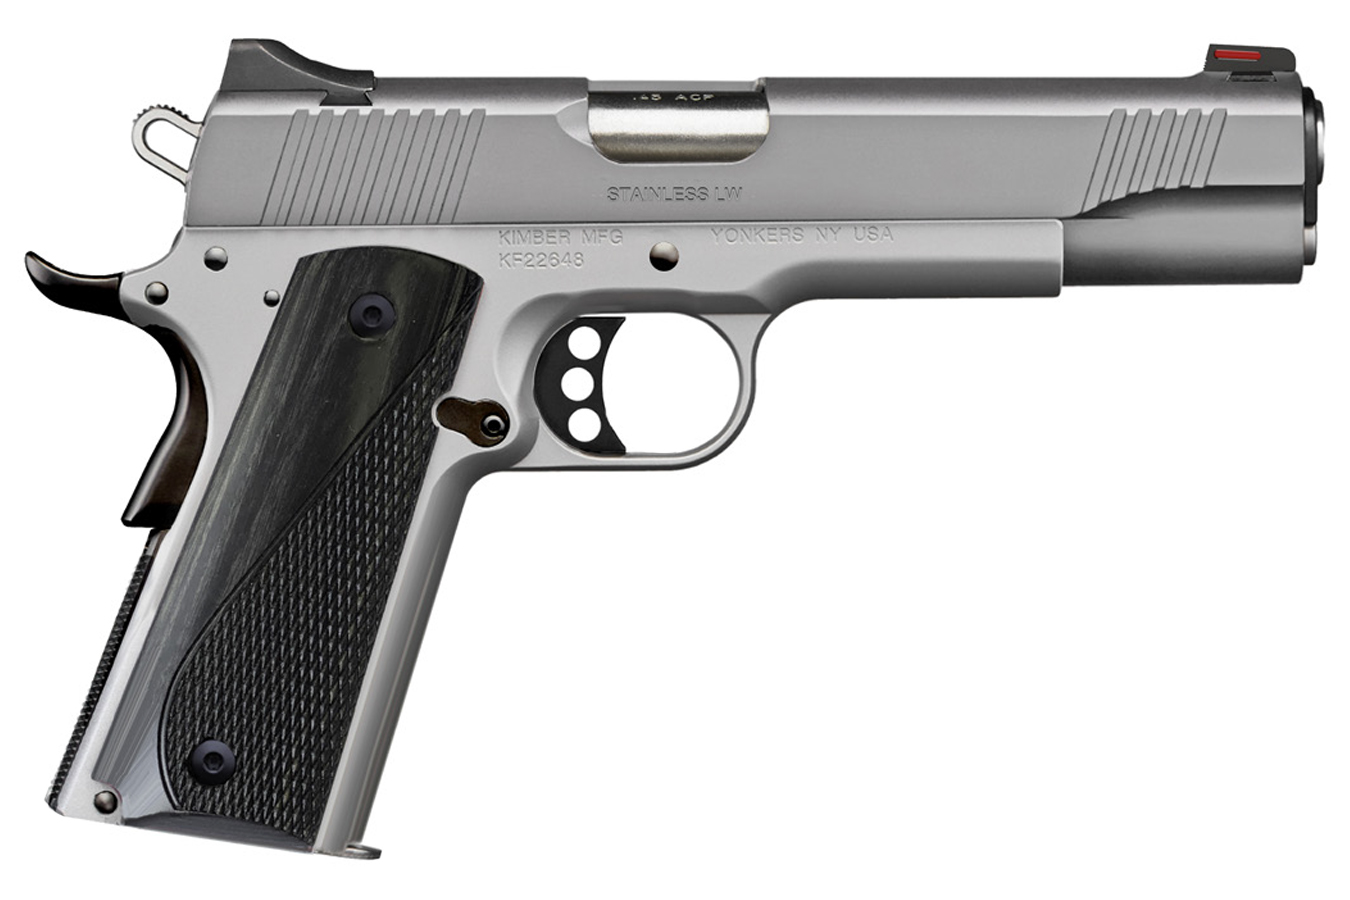 STAINLESS LW  ARCTIC SATIN STAINLESS 45 ACP PISTOL WITH GRAY LAMINATE GRIPS